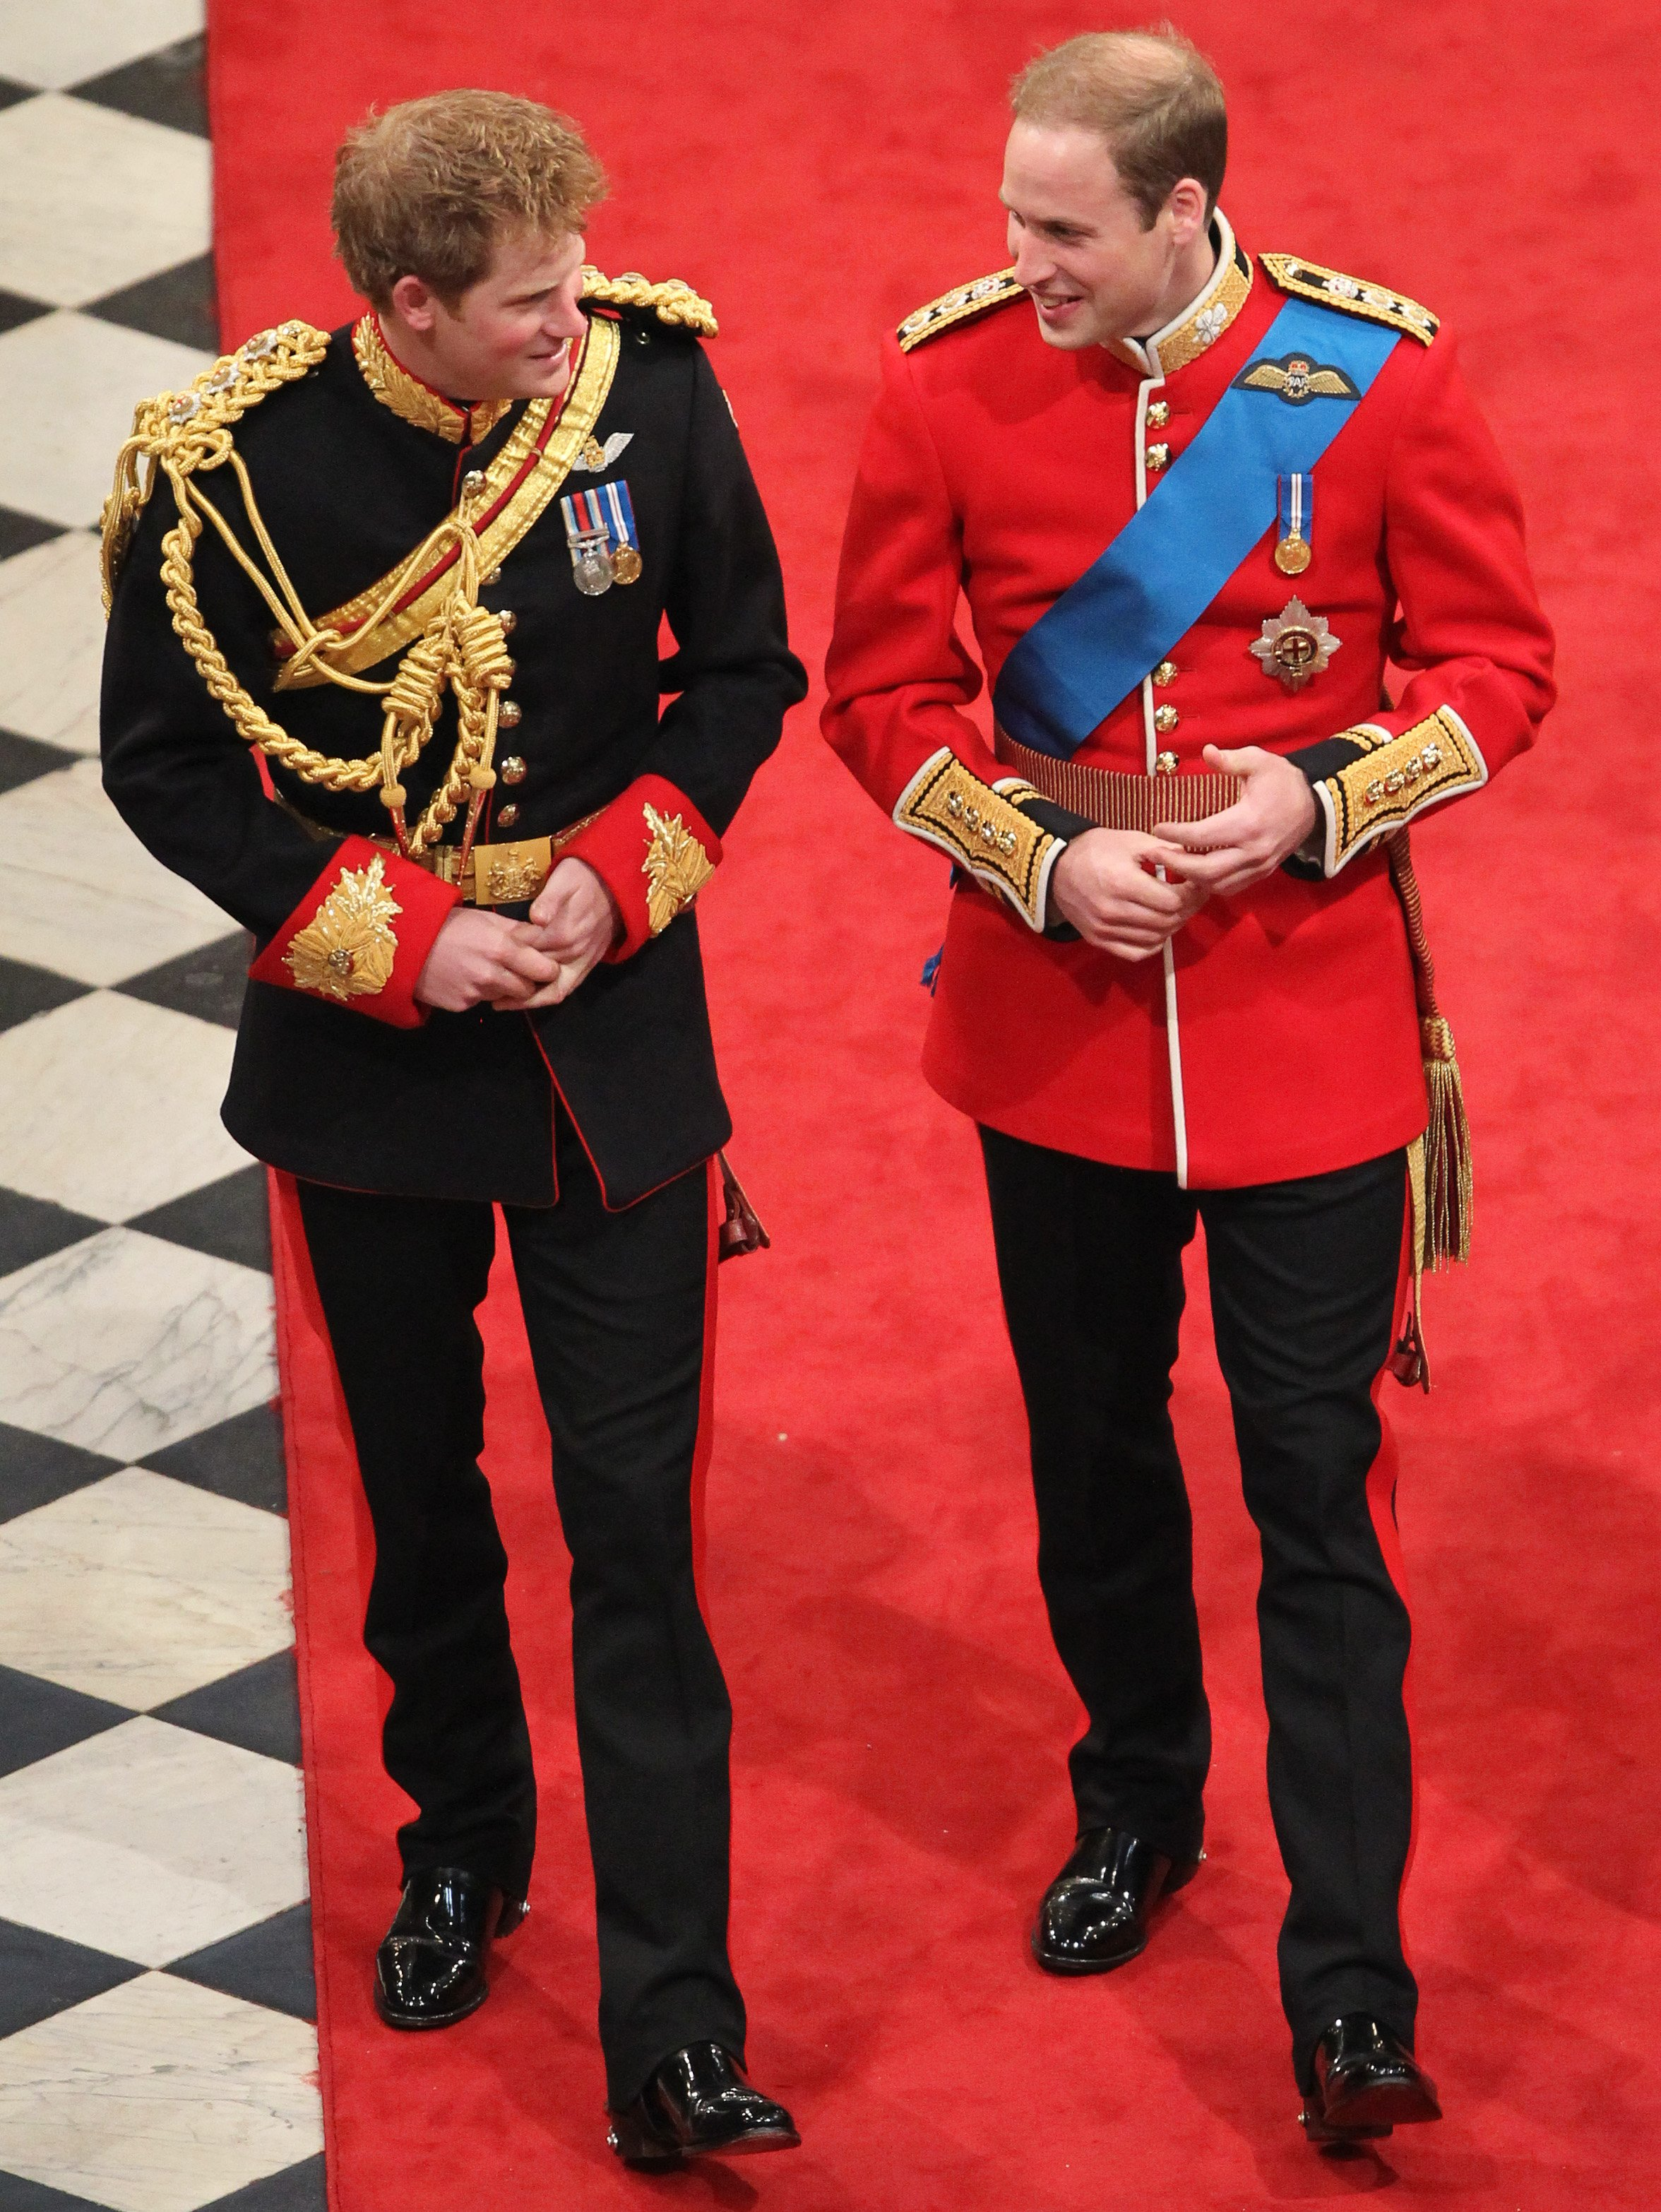 Prince Harry, Duke of Sussex and Prince William, Duke of Cambridge inside Westminster Abbey on April 29, 2011 in London, England | Photo: Getty Images